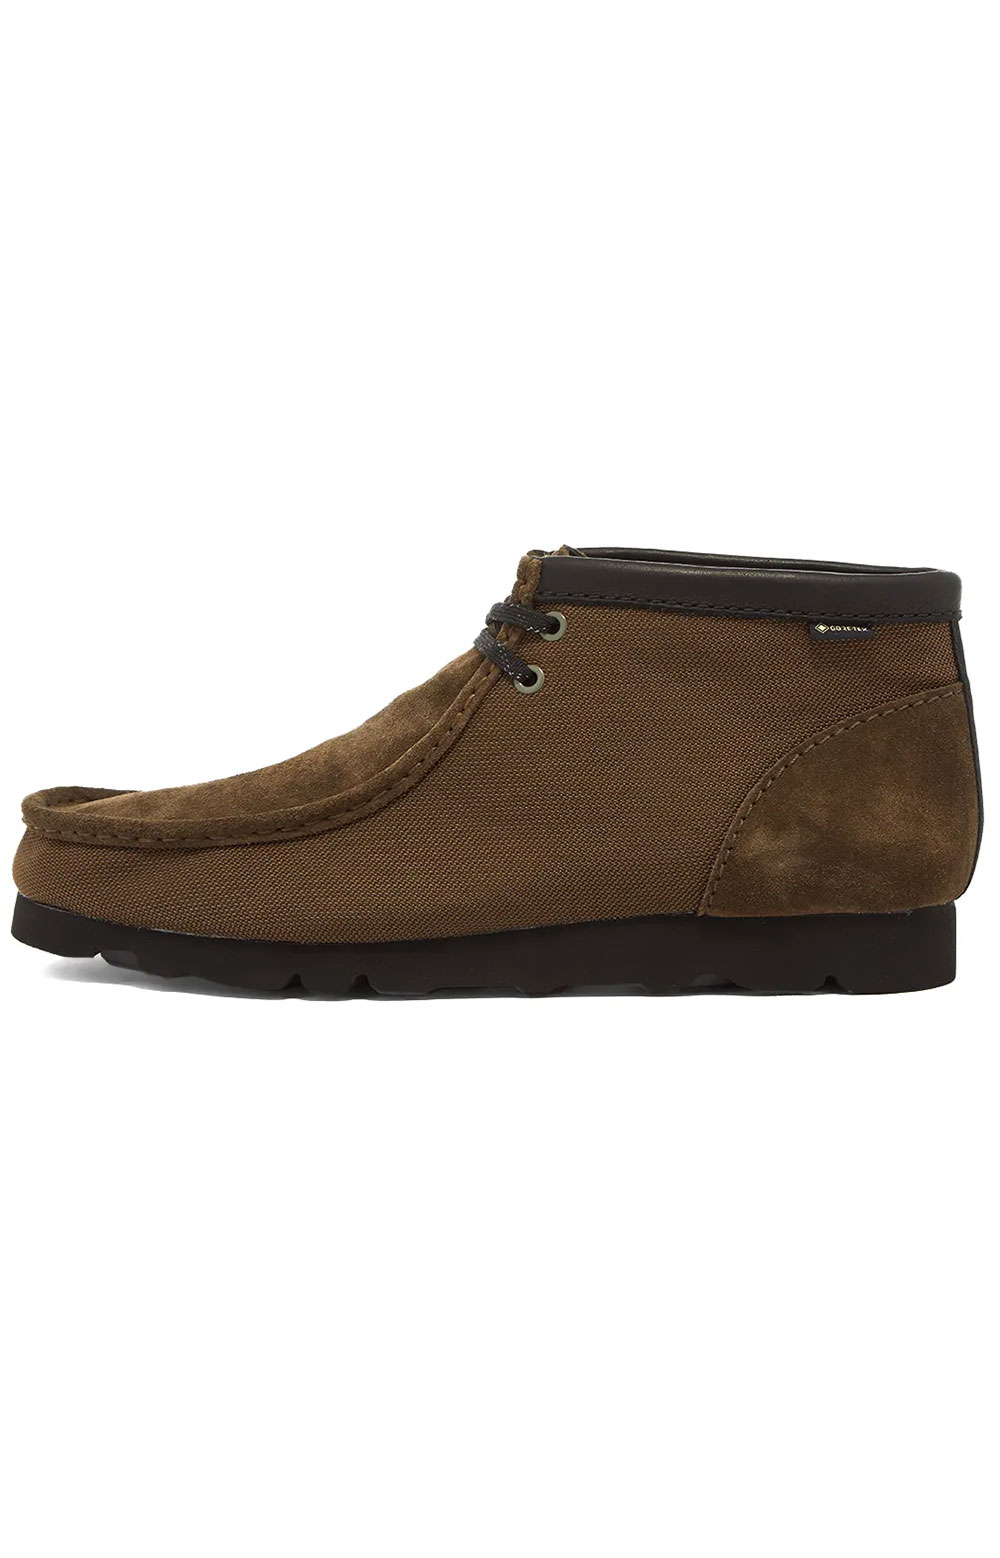 (26154788) Wallabee GTX Boots - Olive Textile 2